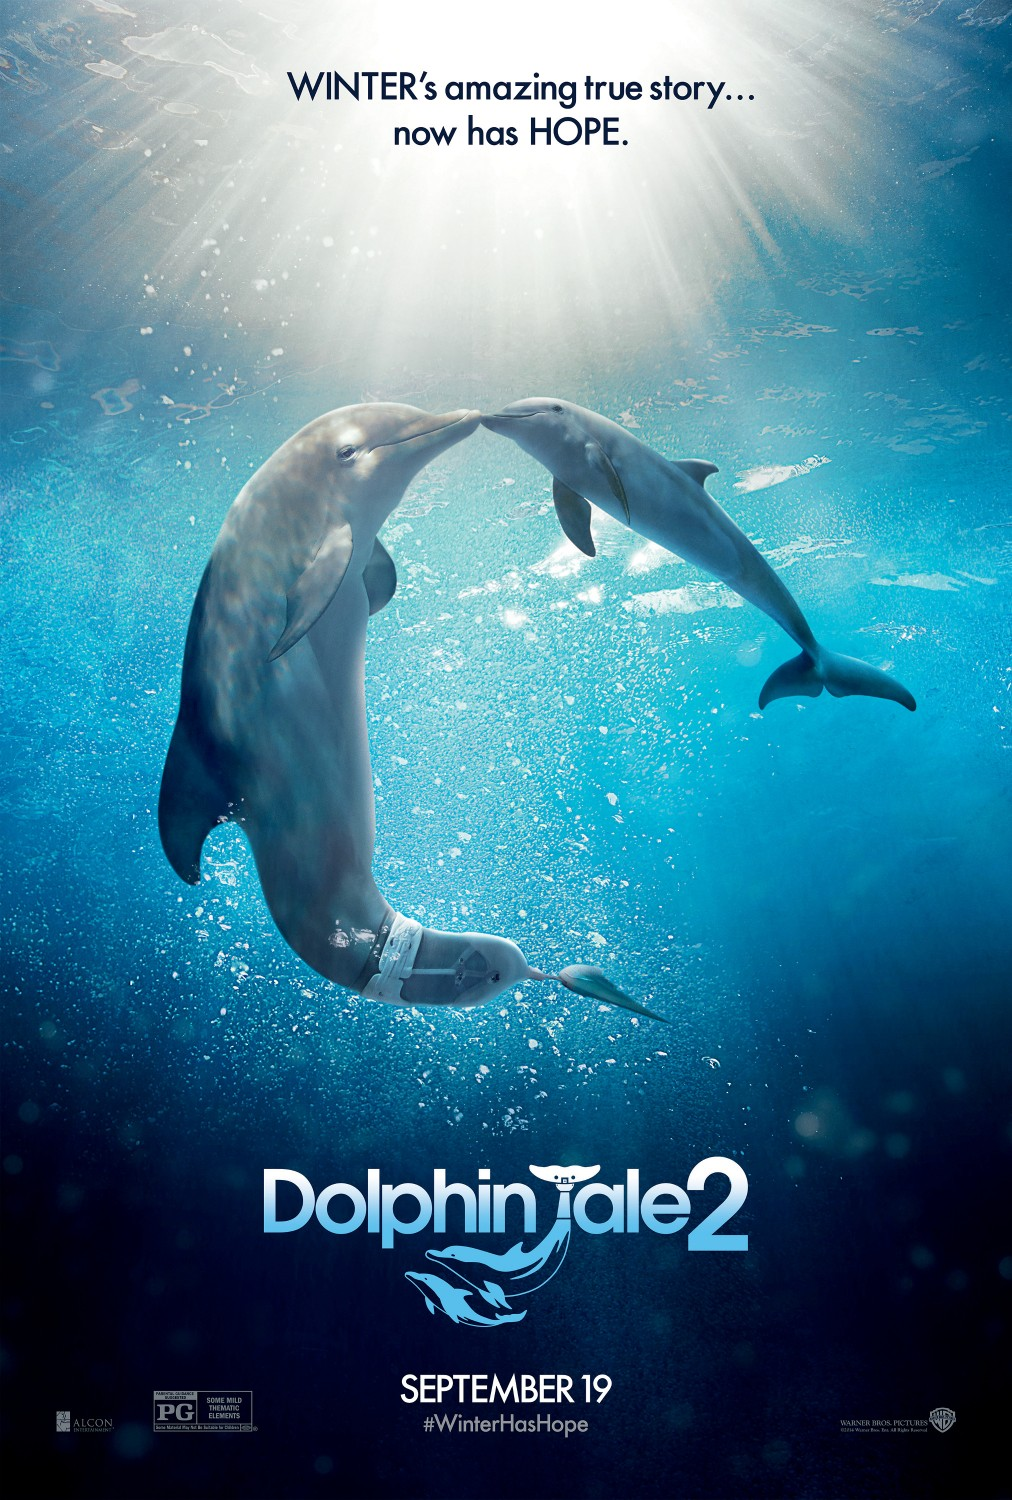 dolphin tale 2 – movies release dates world